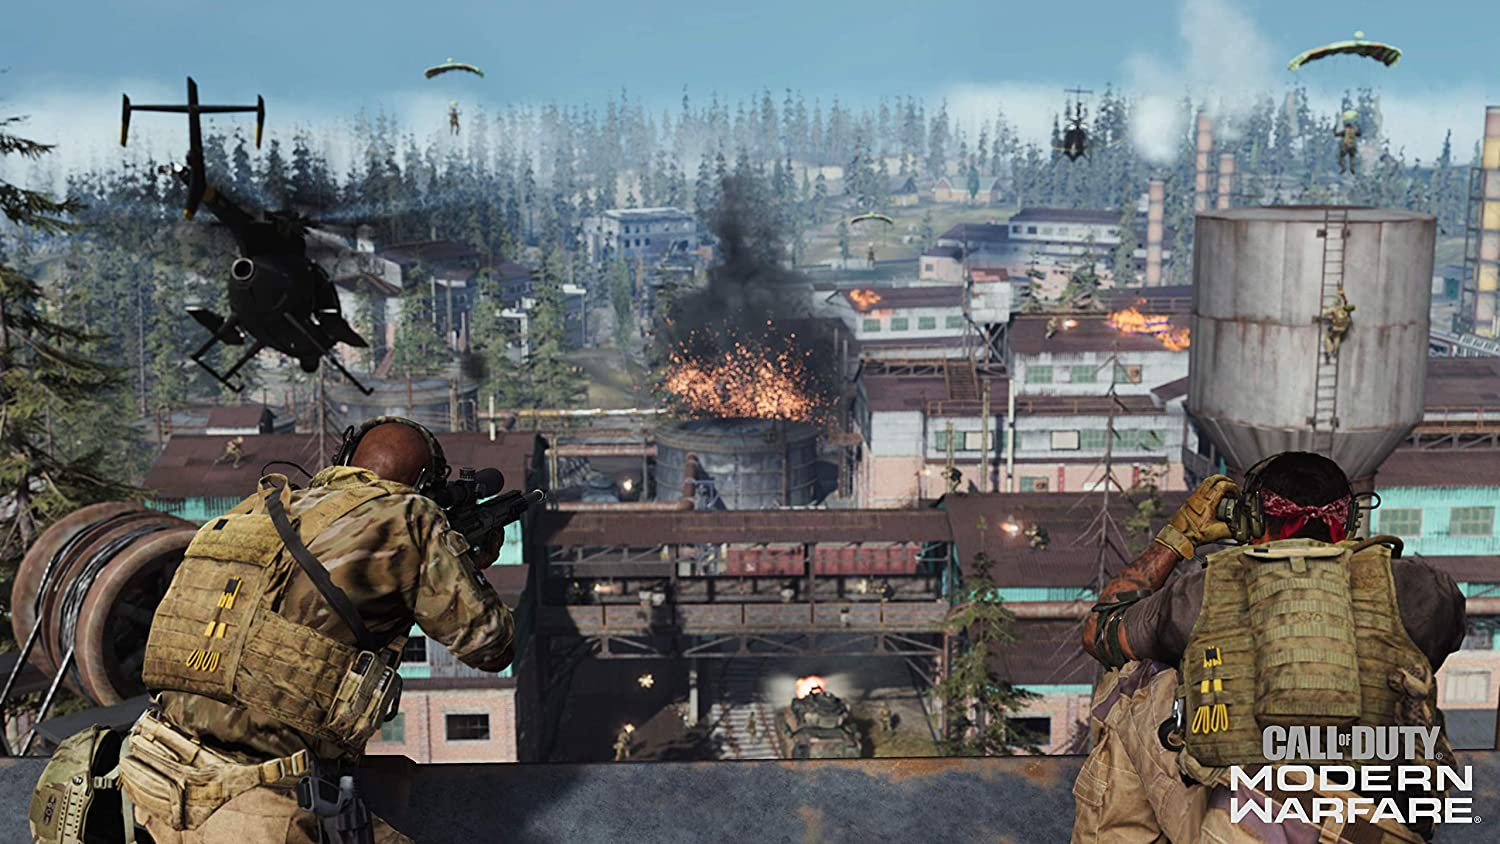 Call Of Duty: Modern Warfare To Get Free Maps, Game Mode Soon